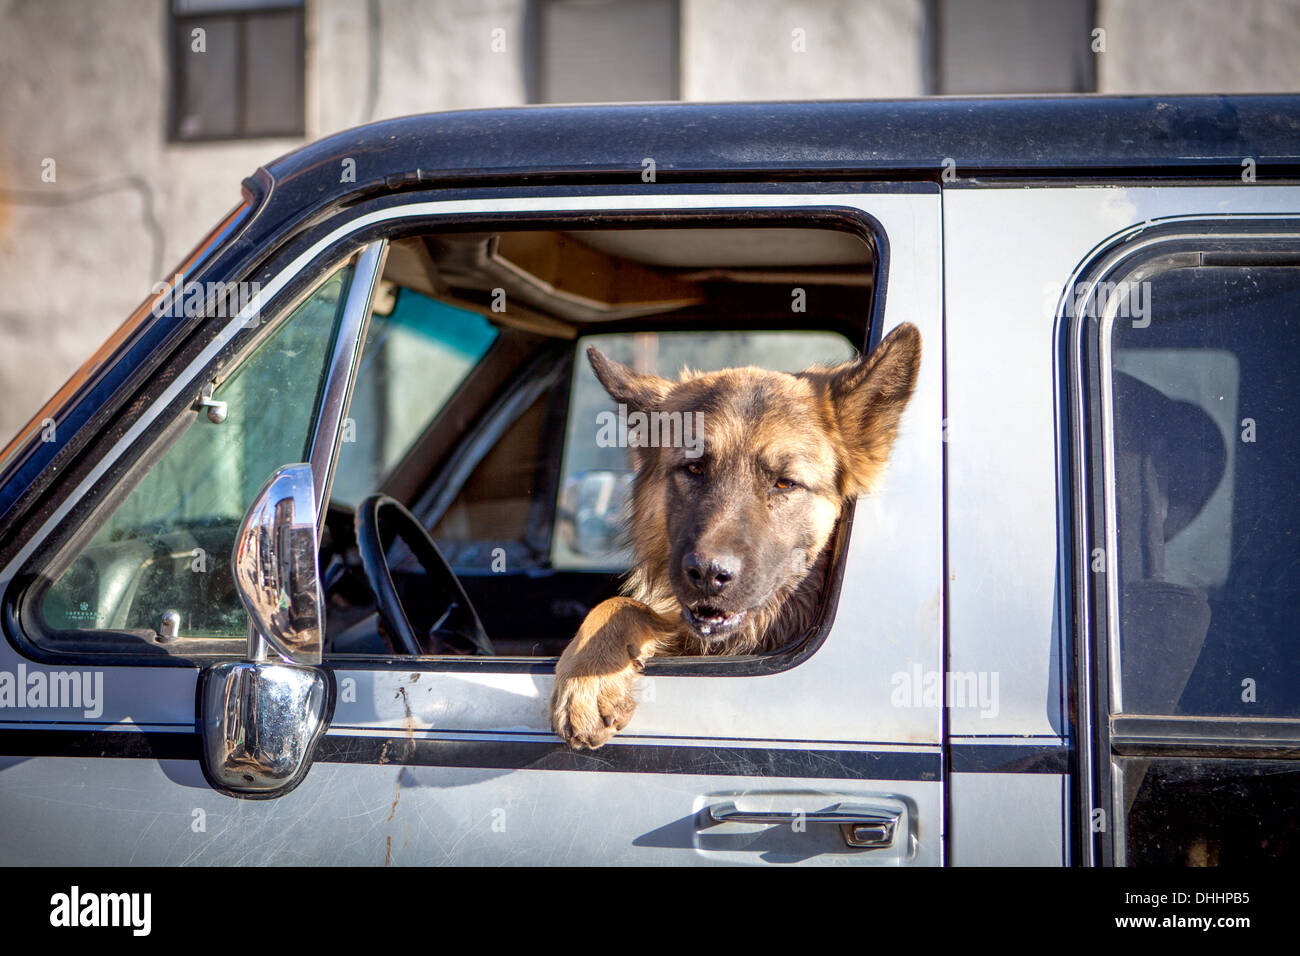 Dog looking out of car window - Stock Image